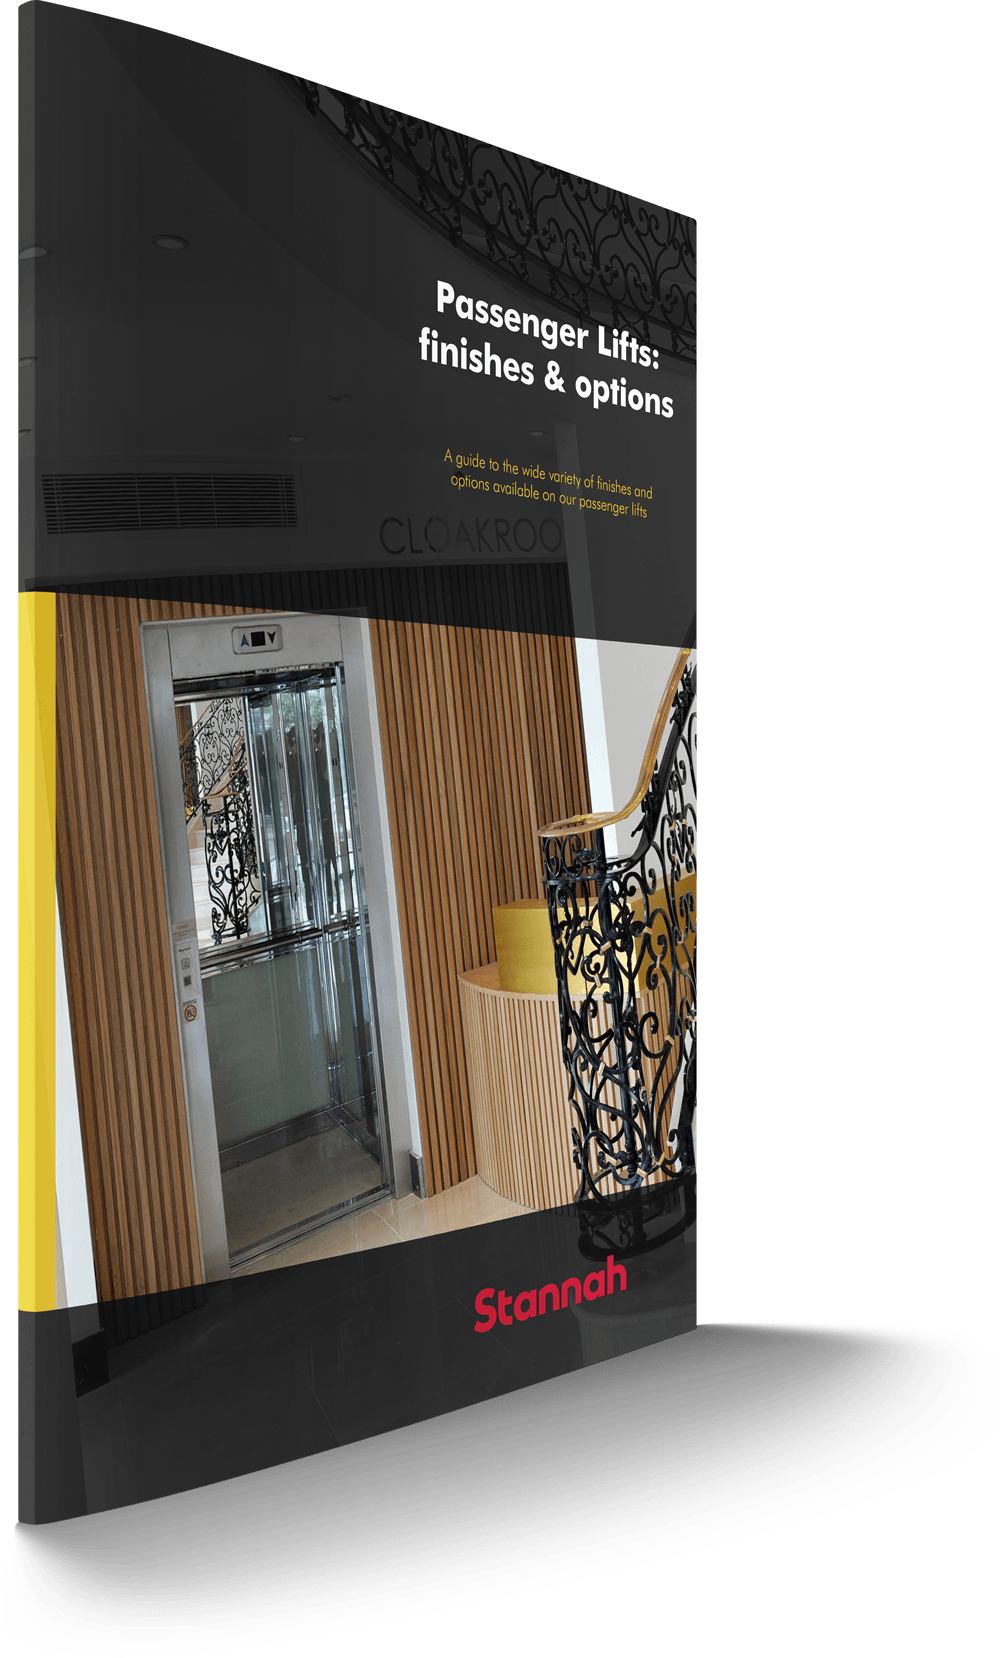 finishes-brochure-download-image.png